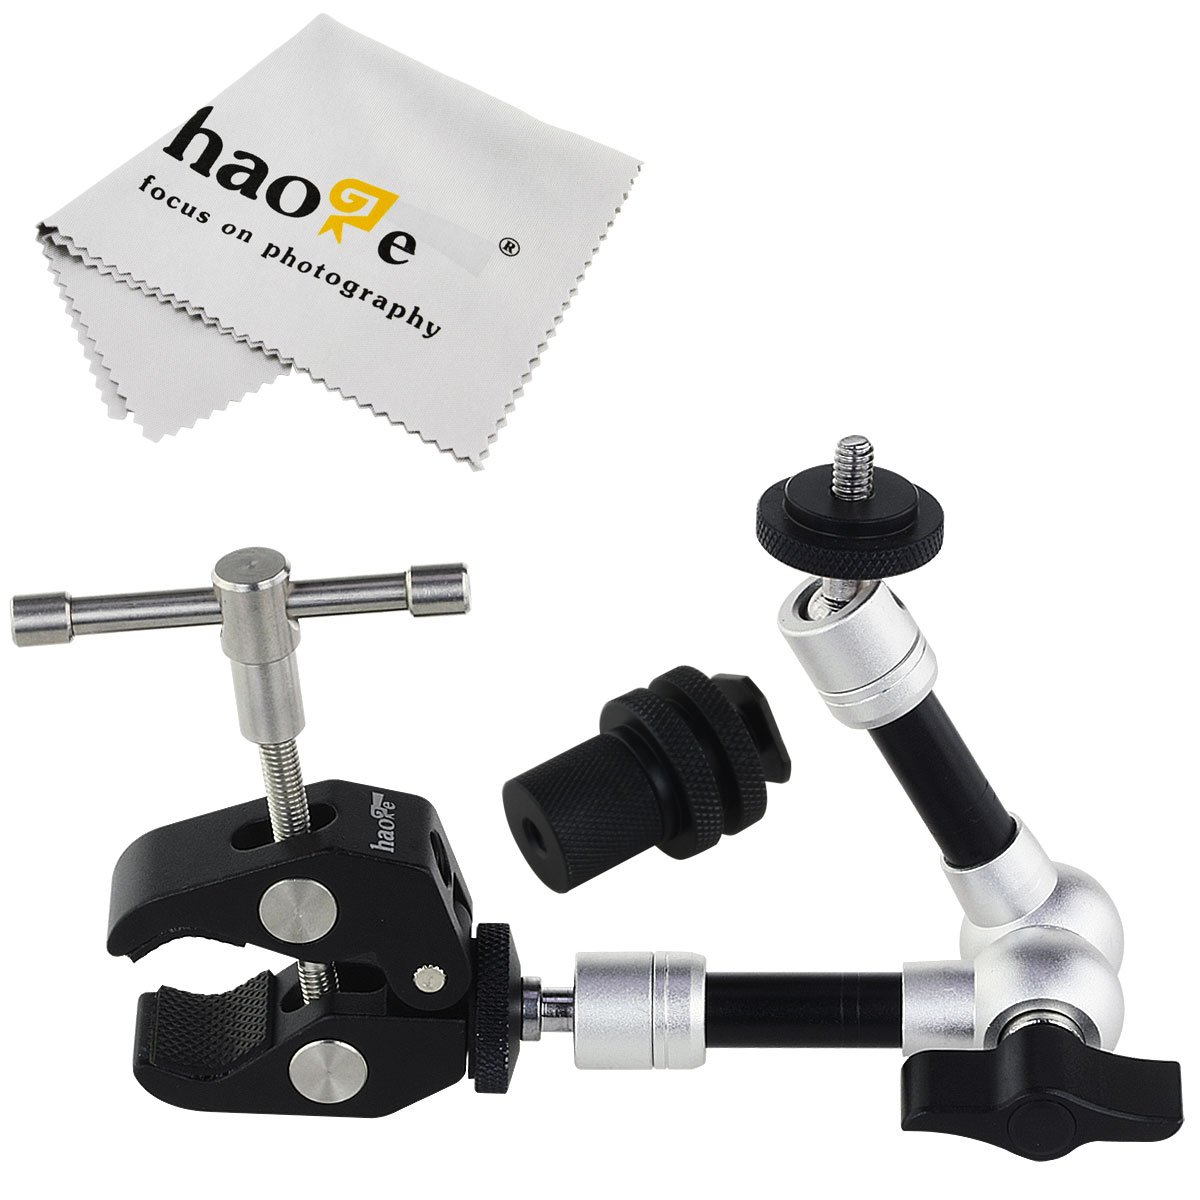 Haoge 7 inch Articulating Friction Magic Arm with Large Clamp Clip for HDMI LCD Monitor LED Light DSLR Camera Video Tripod Flash Lights Microphone TPCAST HTC VIVE Pro Base Station lightinghouse